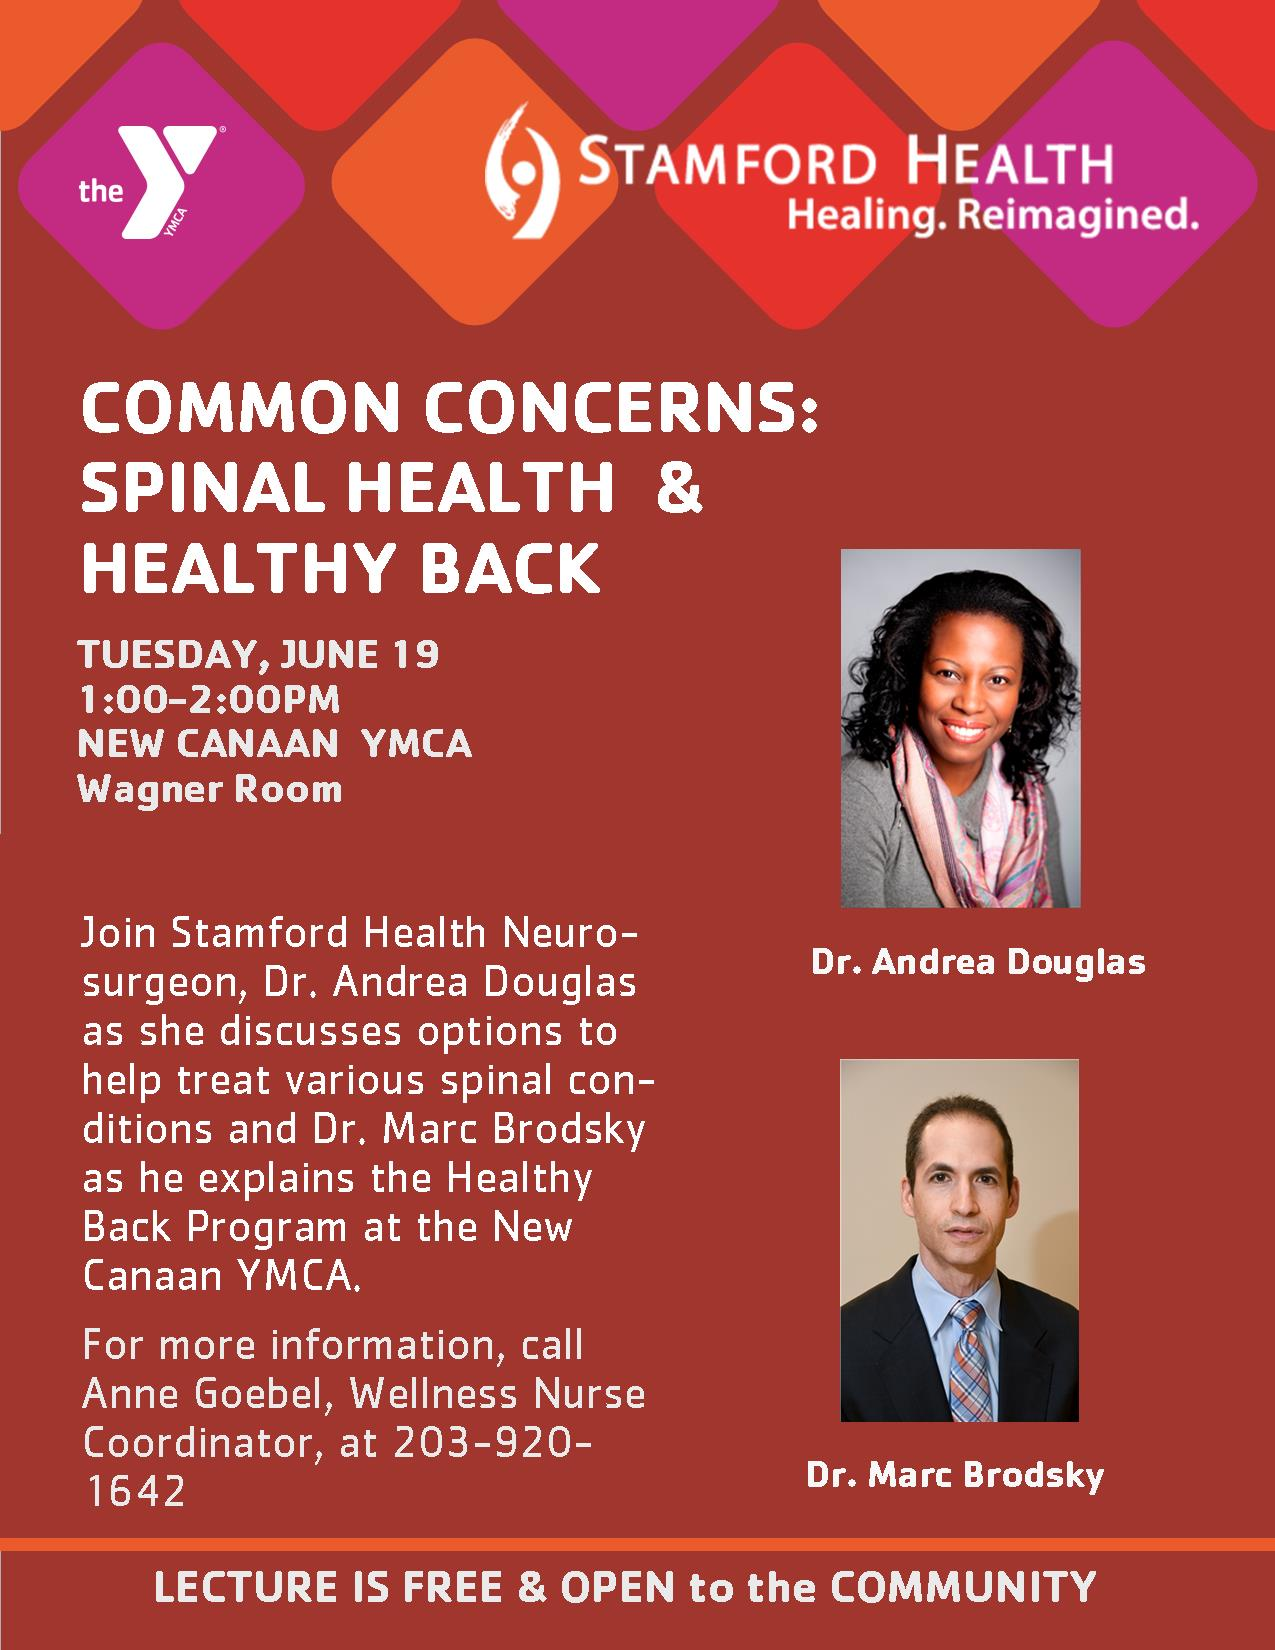 Spinal Health & Healthy Back Lecture @ New Canaan YMCA, Wagner Room